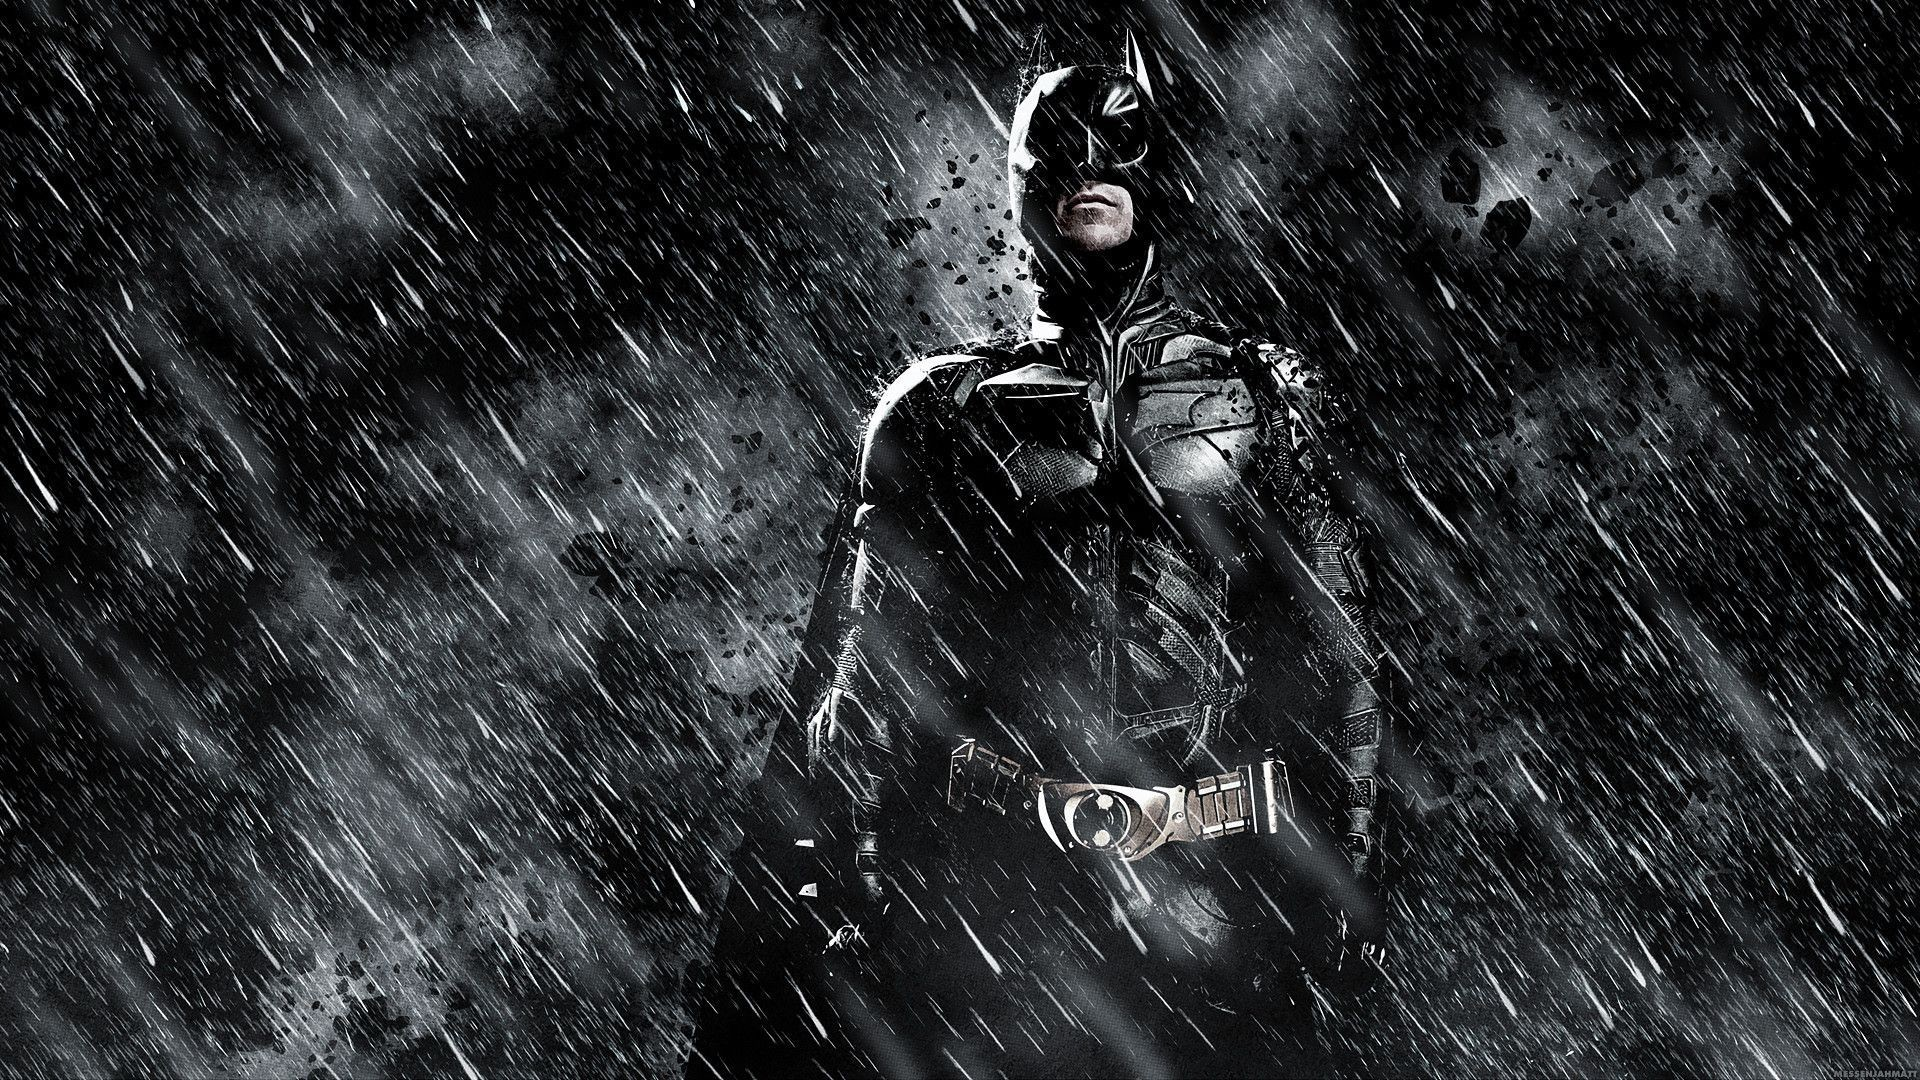 1920x1080 The Dark Knight Rises HD Wallpapers and Desktop Backgrounds 1920×1080 The  Dark Knight Wallpapers HD (55 Wallpapers) | Adorable Wallpapers | Desktop  ...